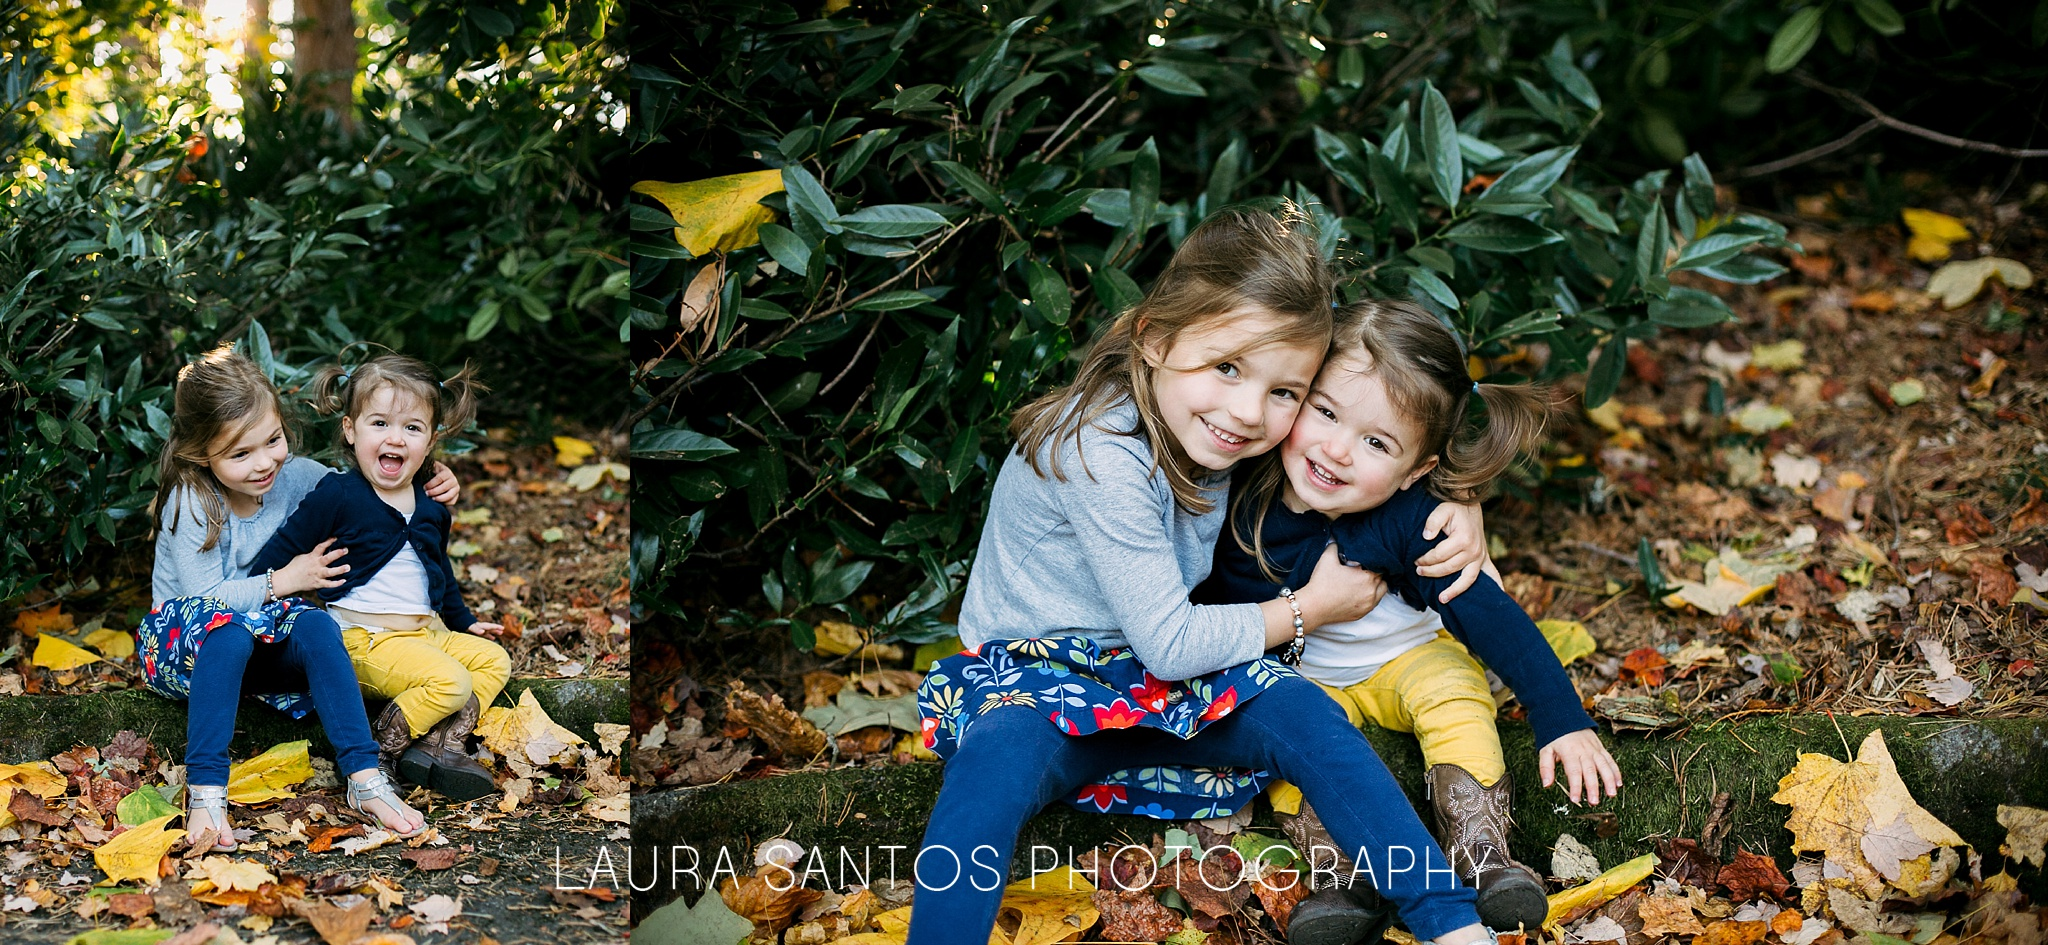 Laura Santos Photography Portland Oregon Family Photographer_0090.jpg